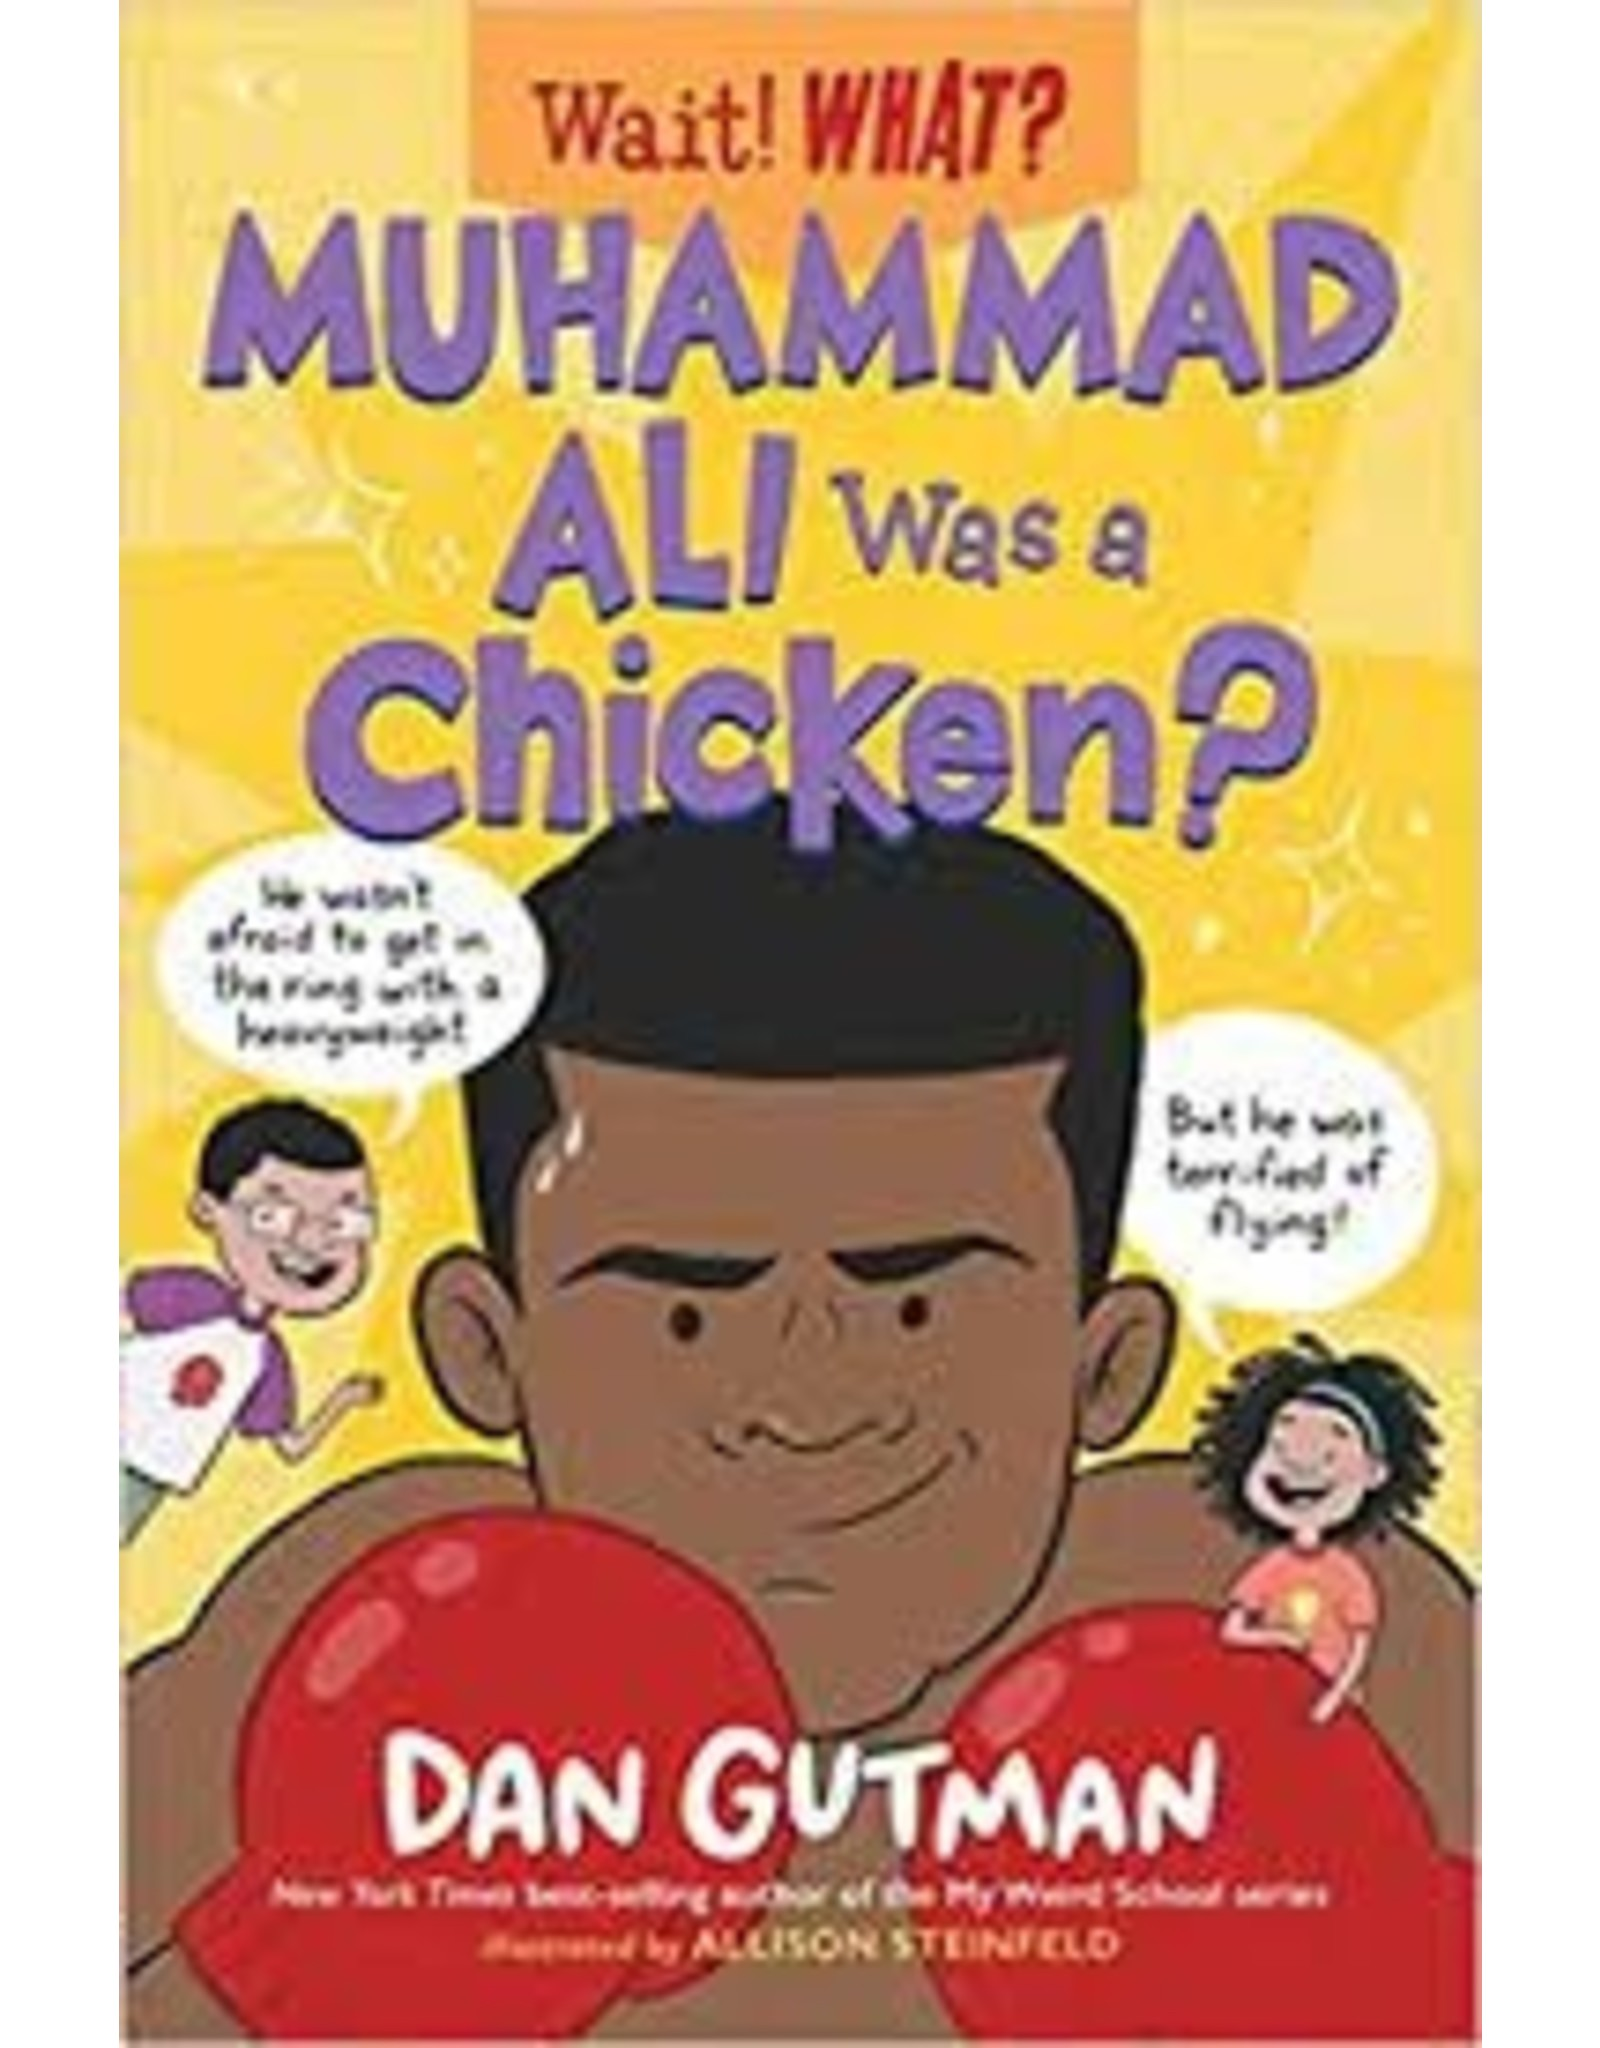 Books Wait! What? Muhammad Ali was a Chicken? by Dan Gutman